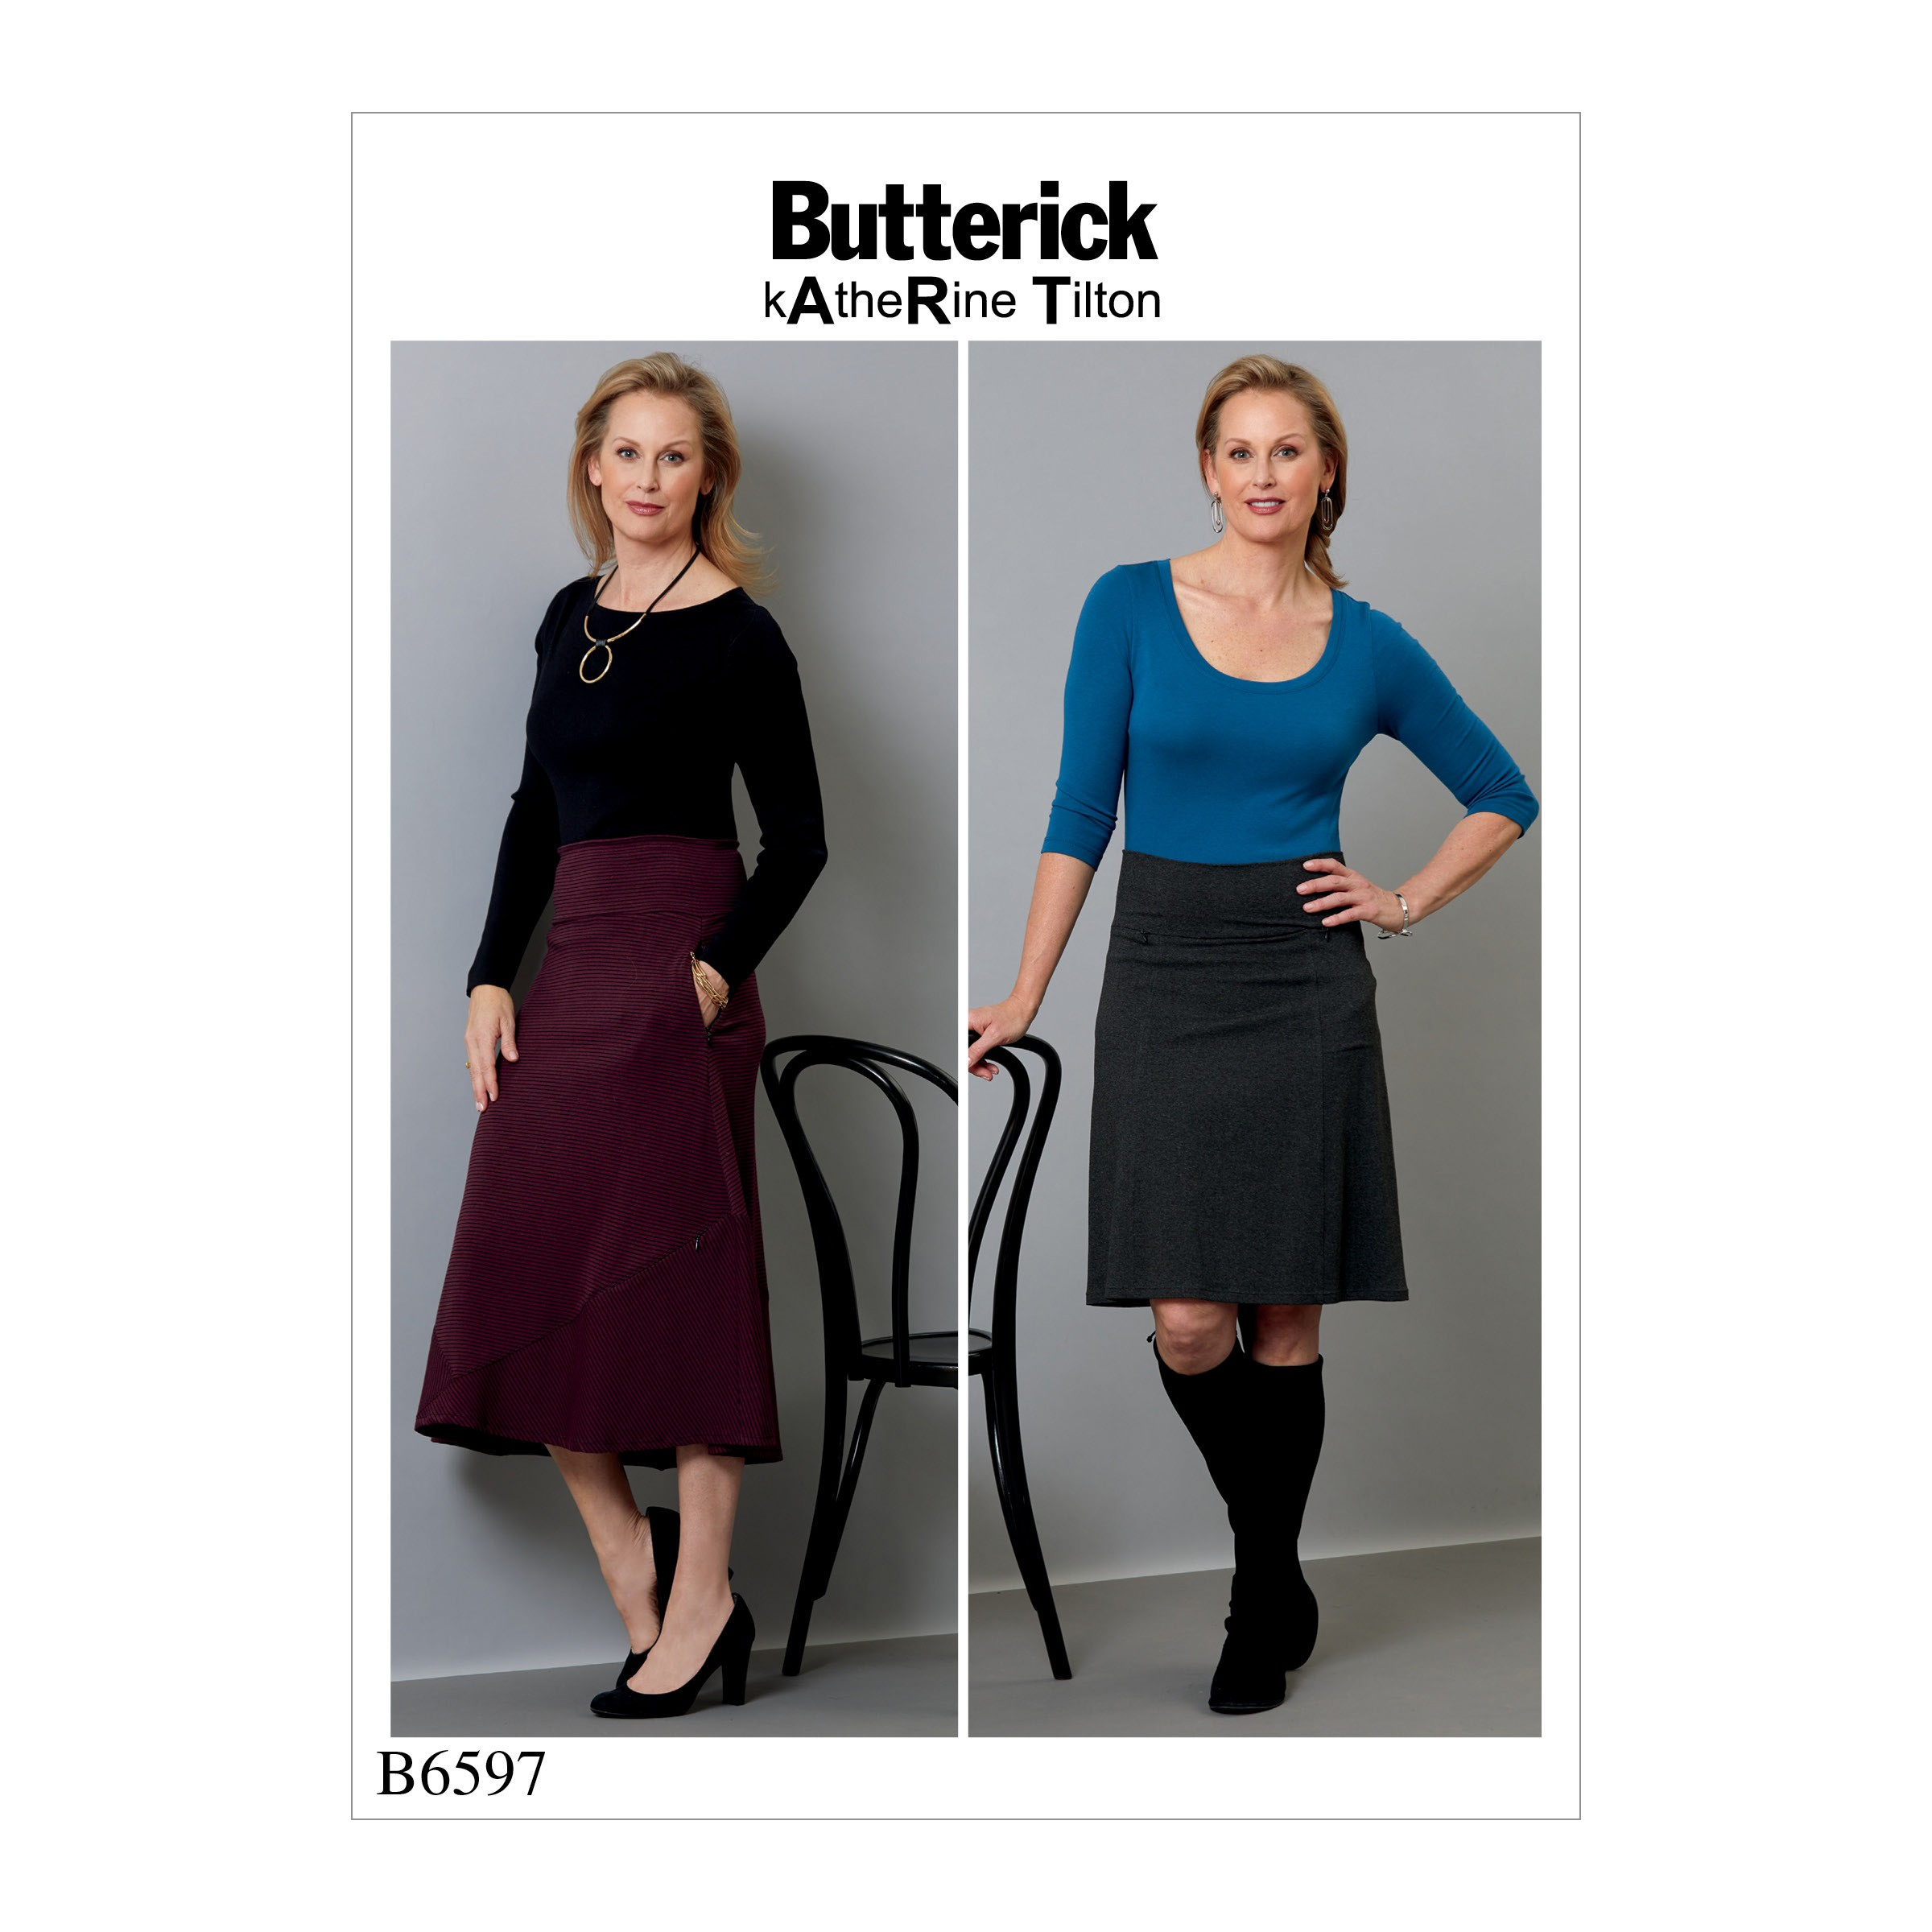 Butterick Sewing Pattern 6597 Misses' Skirts with Feature Seam Details